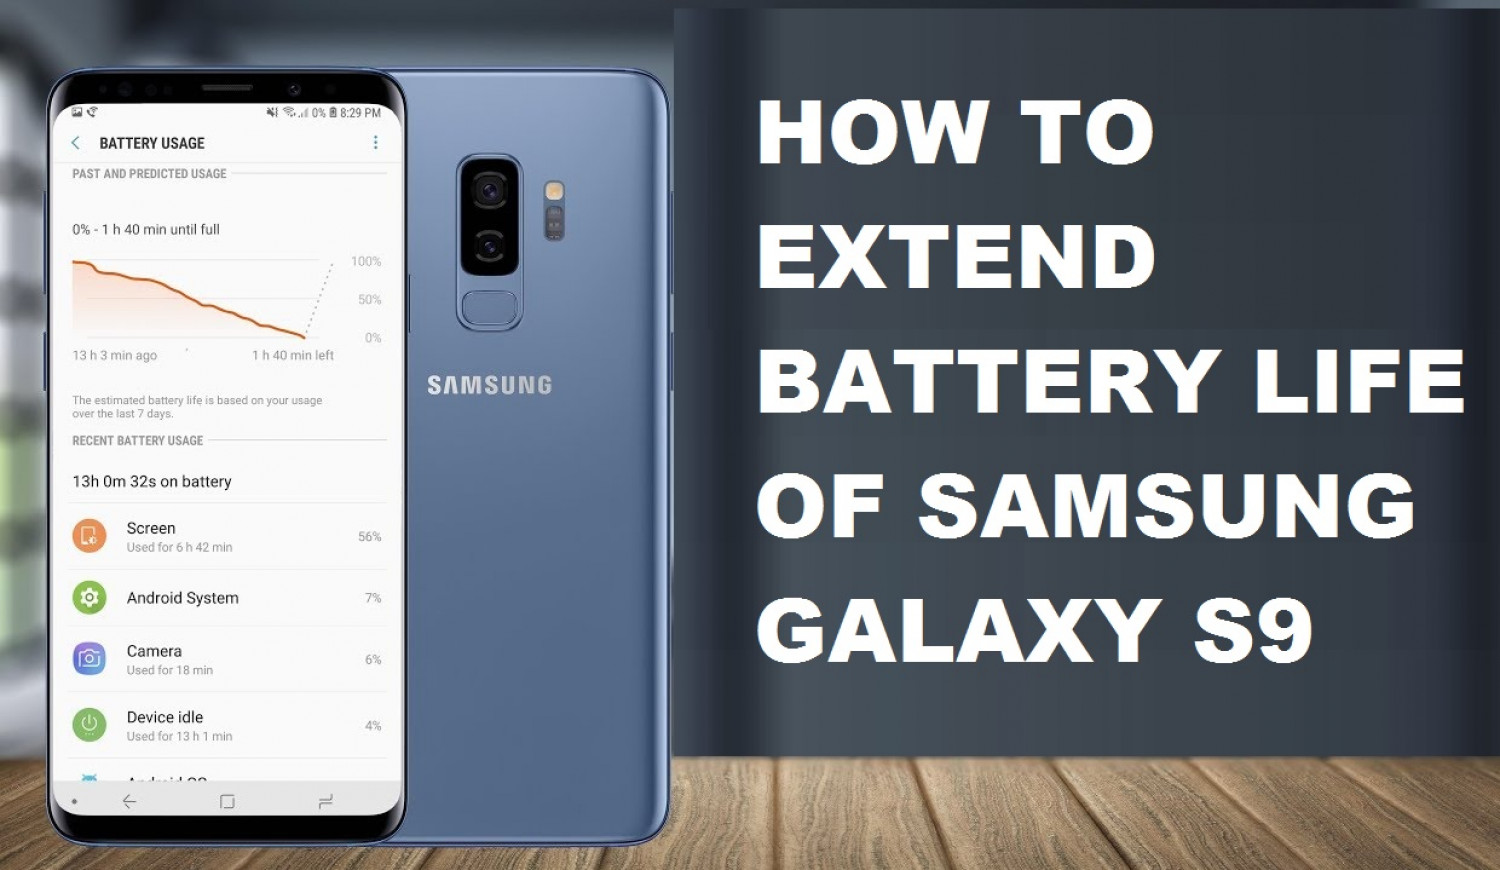 How to Extend Battery Life of Samsung Galaxy S9  Infographic